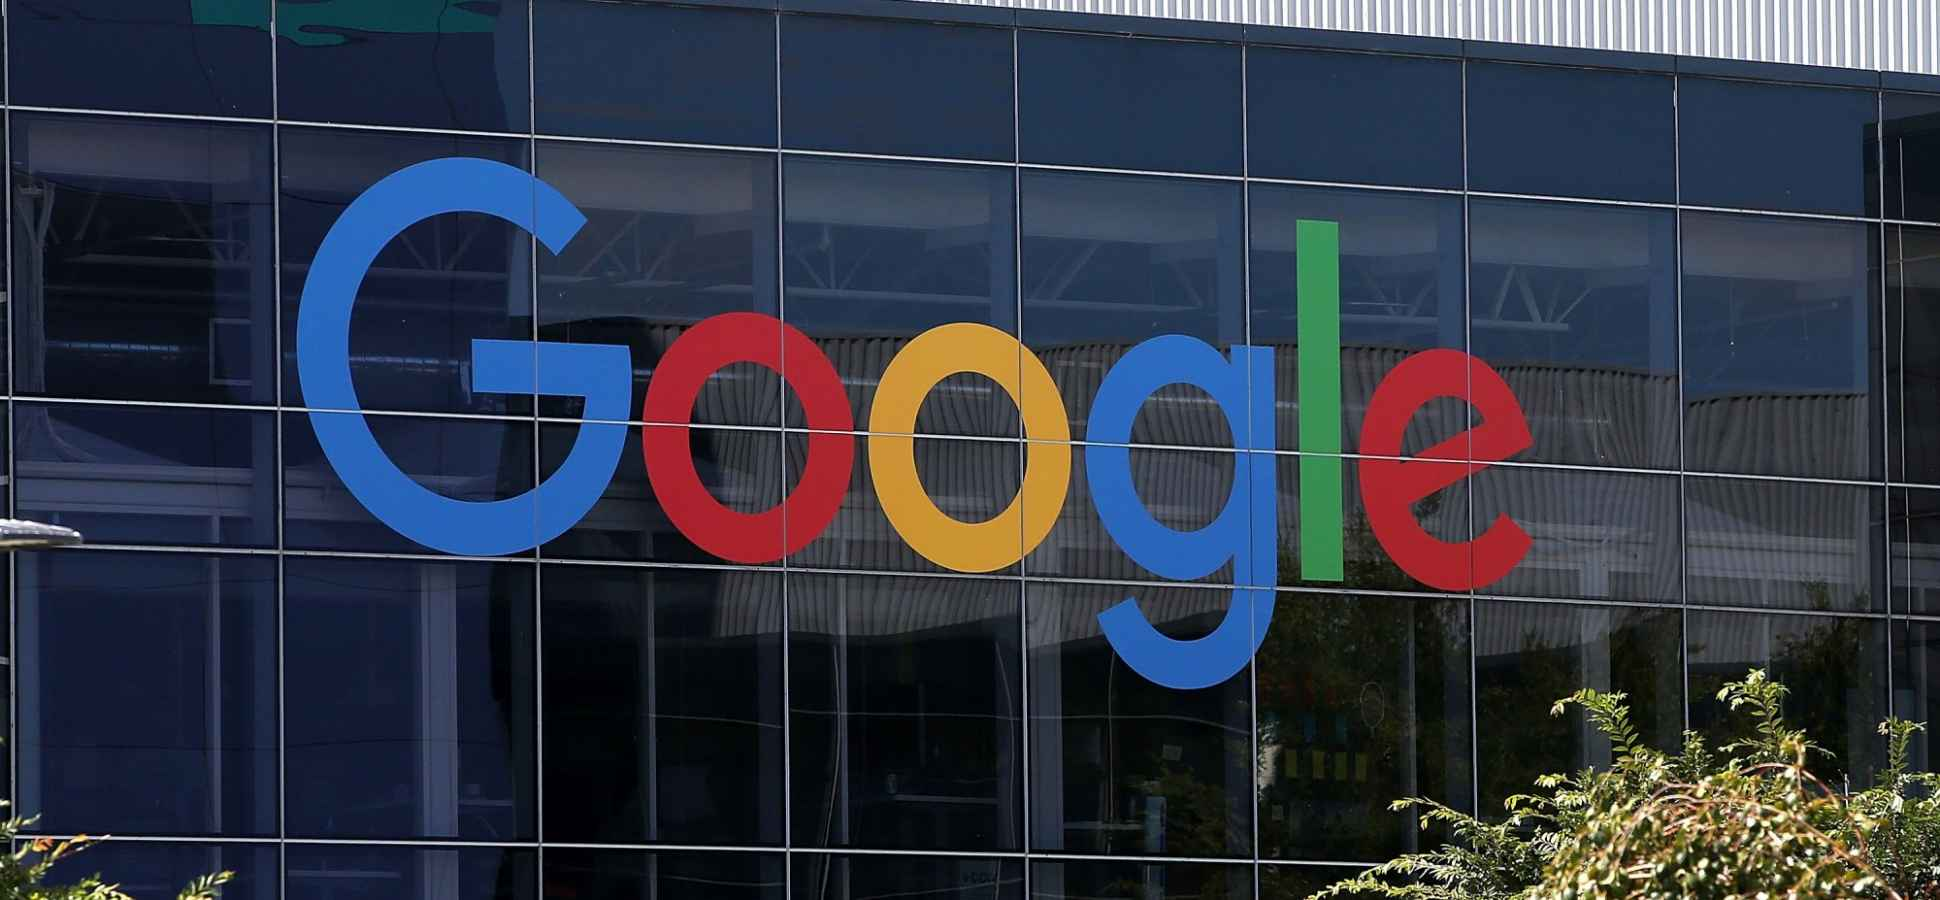 Google Employees Weighed In on What Makes a Highly Effective Manager (Technical Expertise Came in Last)